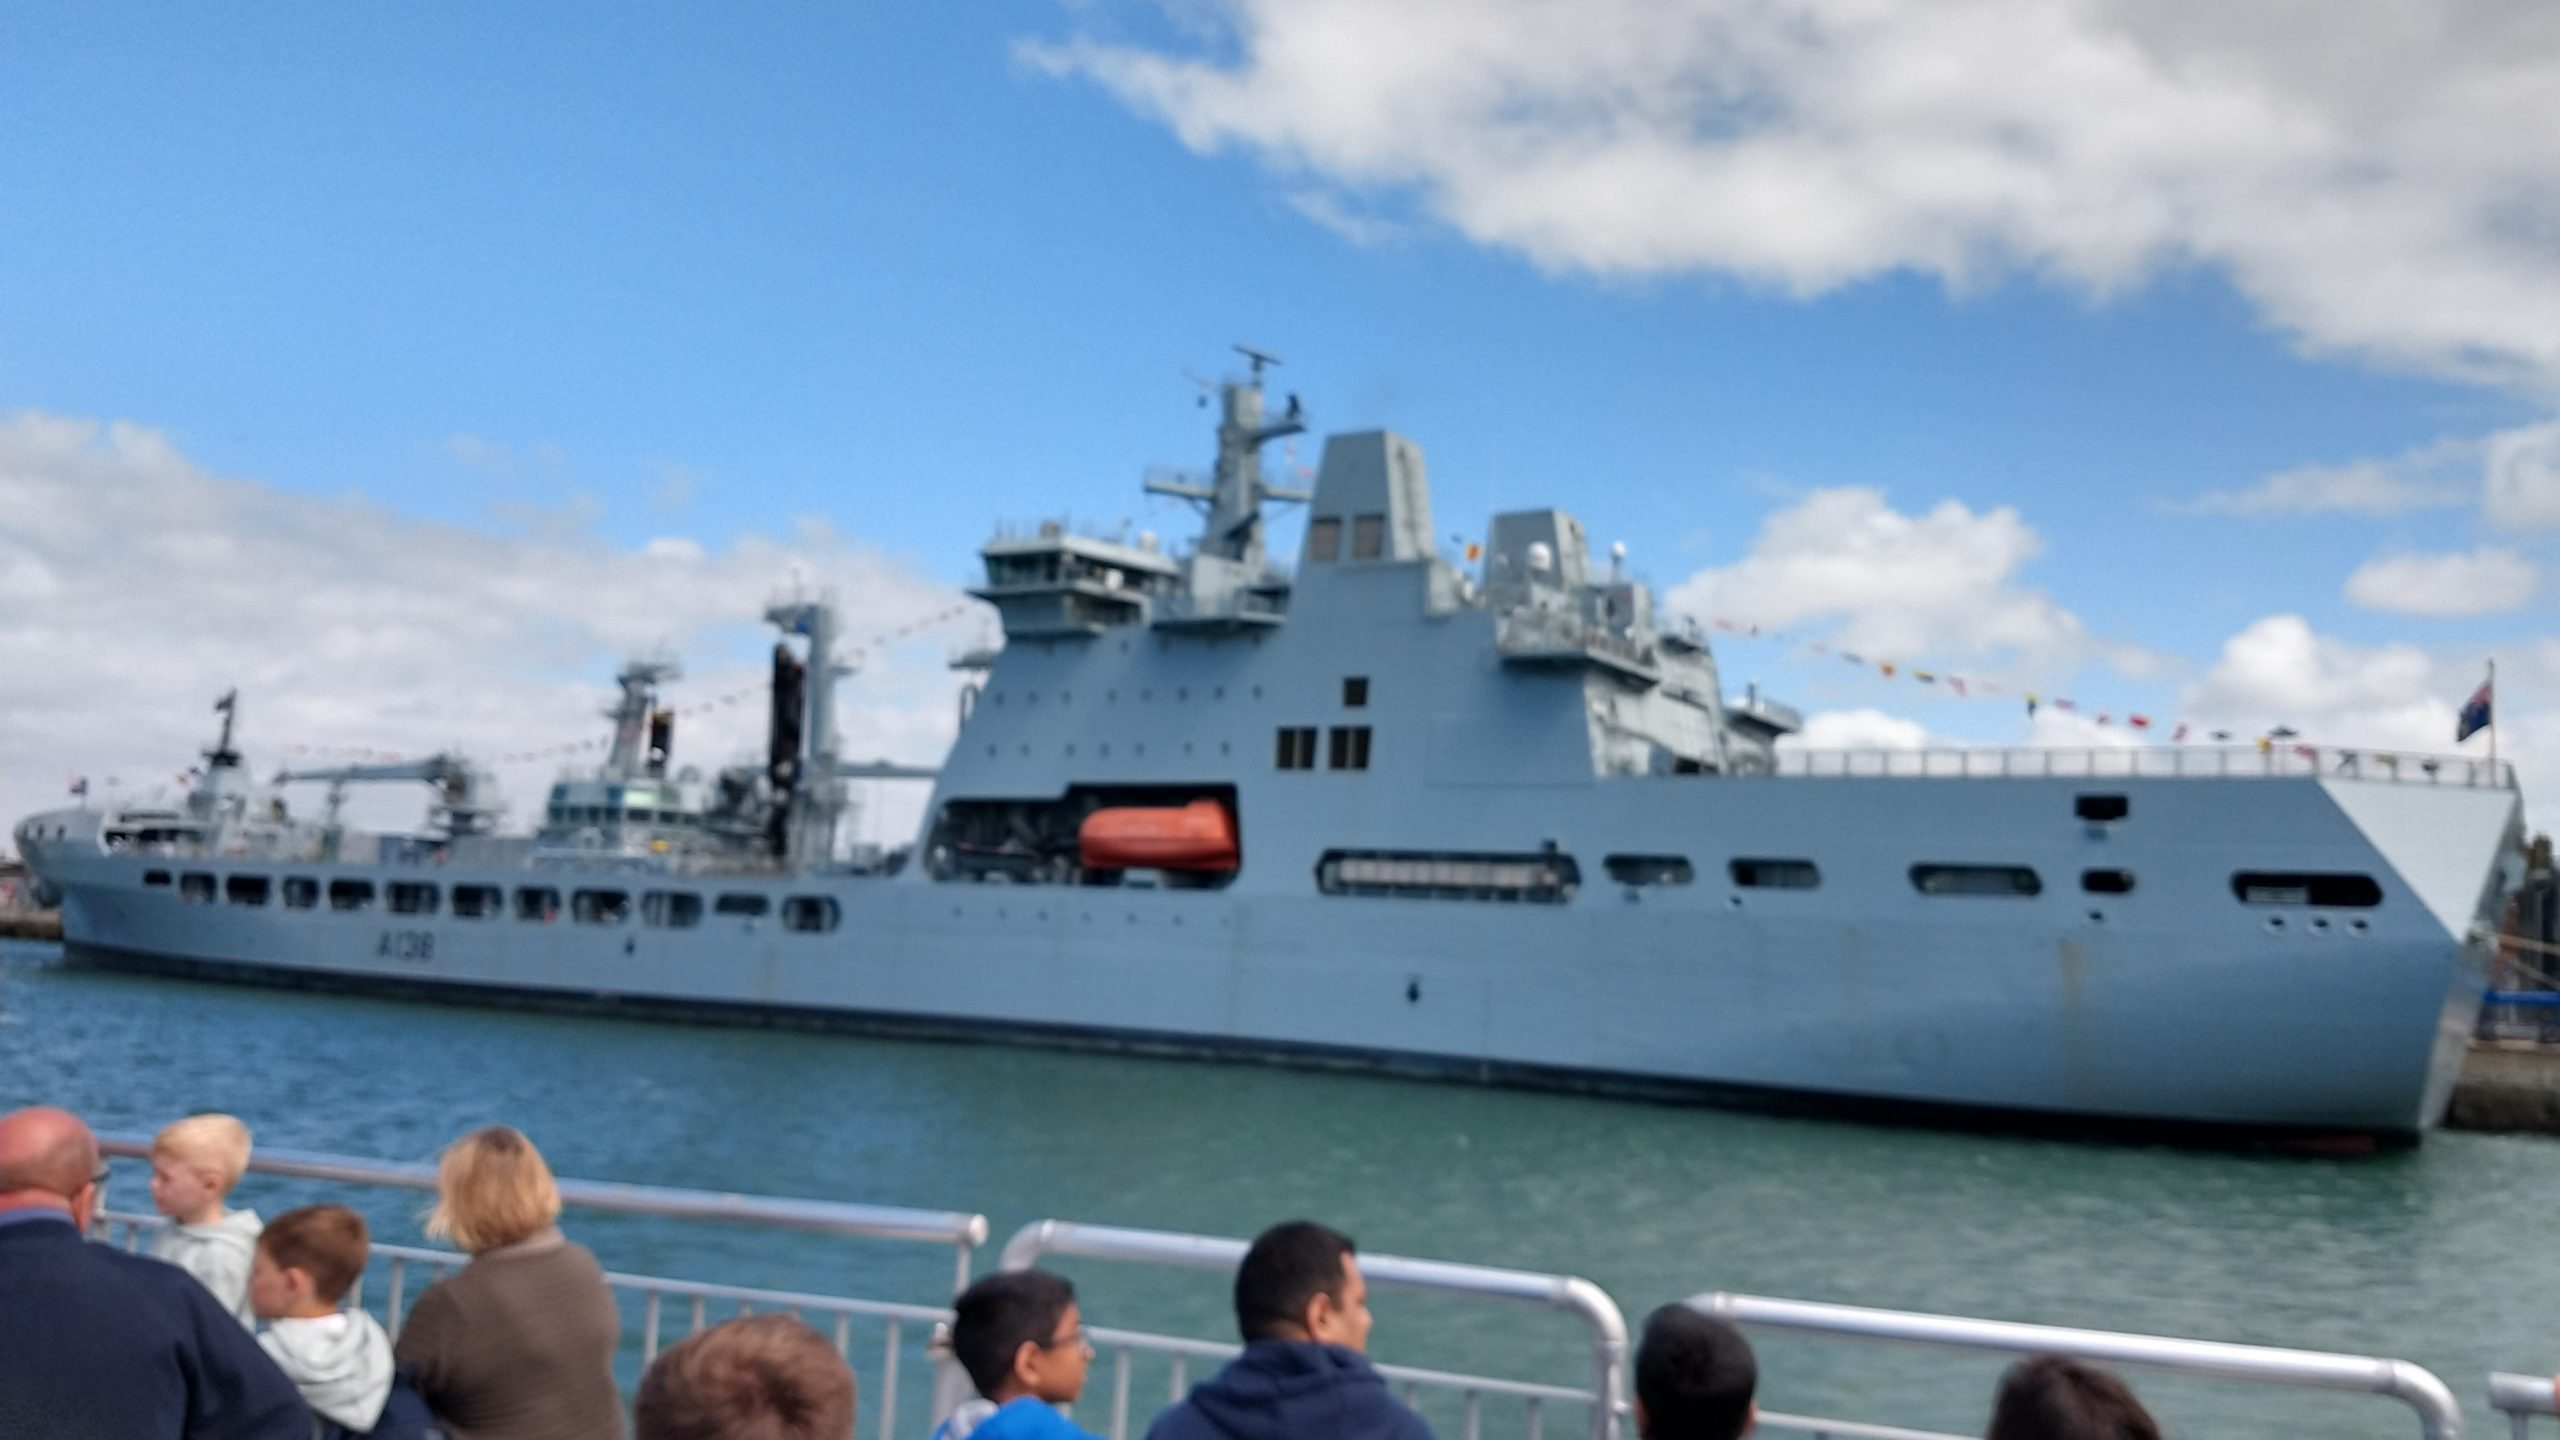 Harbour Tours, Portsmouth Historic Dockyard, museum